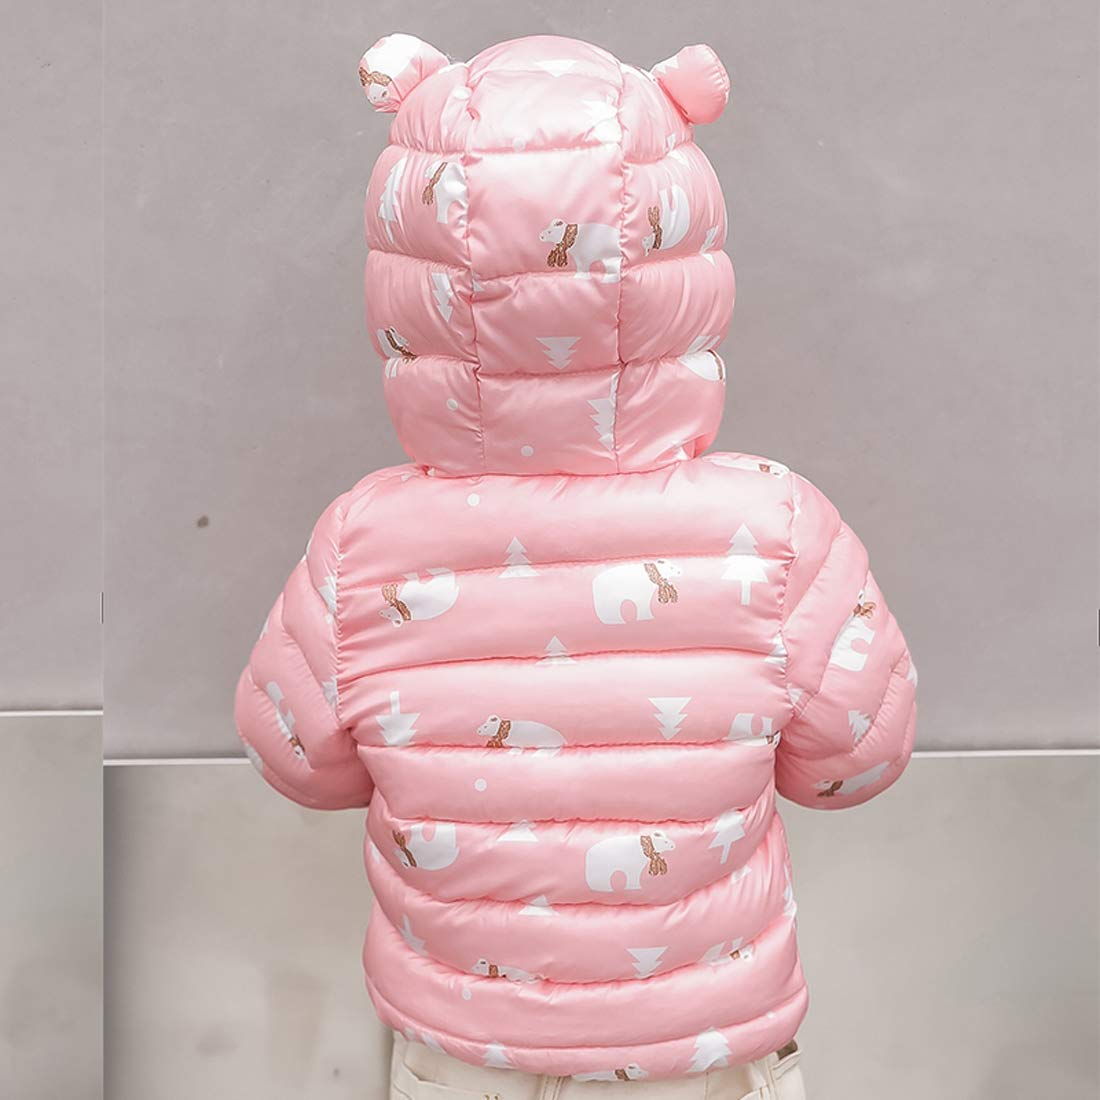 FEOYA Baby Boys Girls Winter Coats with Hoods Lightweight Puffer Little Jacket for Toddlers Infant 12-18 Months